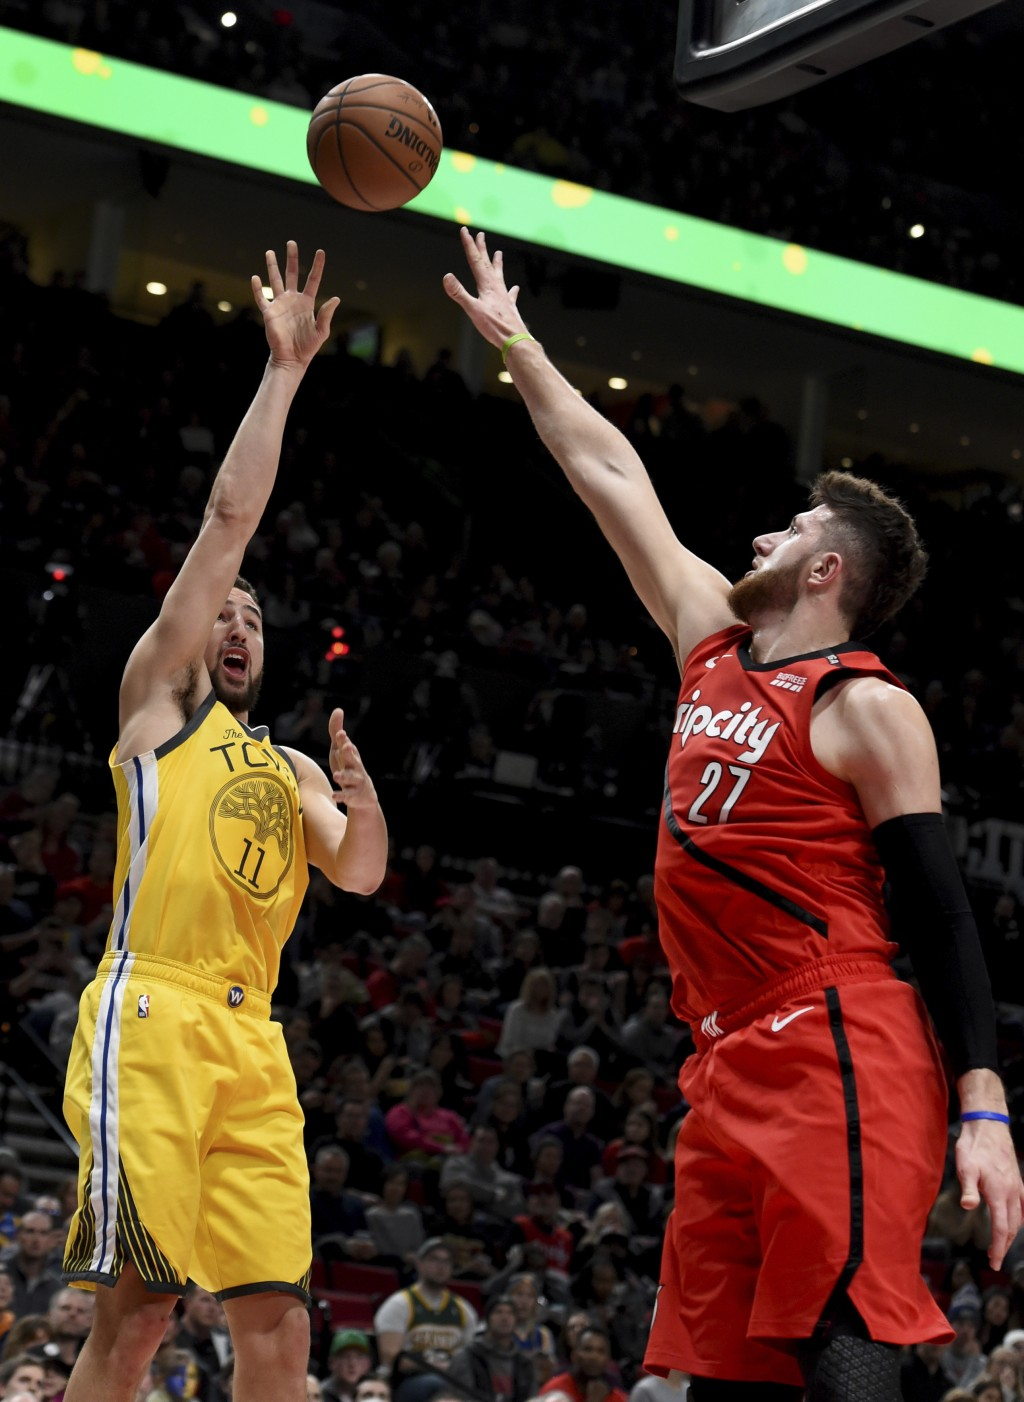 Golden State Warriors guard Klay Thompson, left, hits a shot over Portland Trail Blazers center Jusuf Nurkic, right, during the first half of an NBA b...